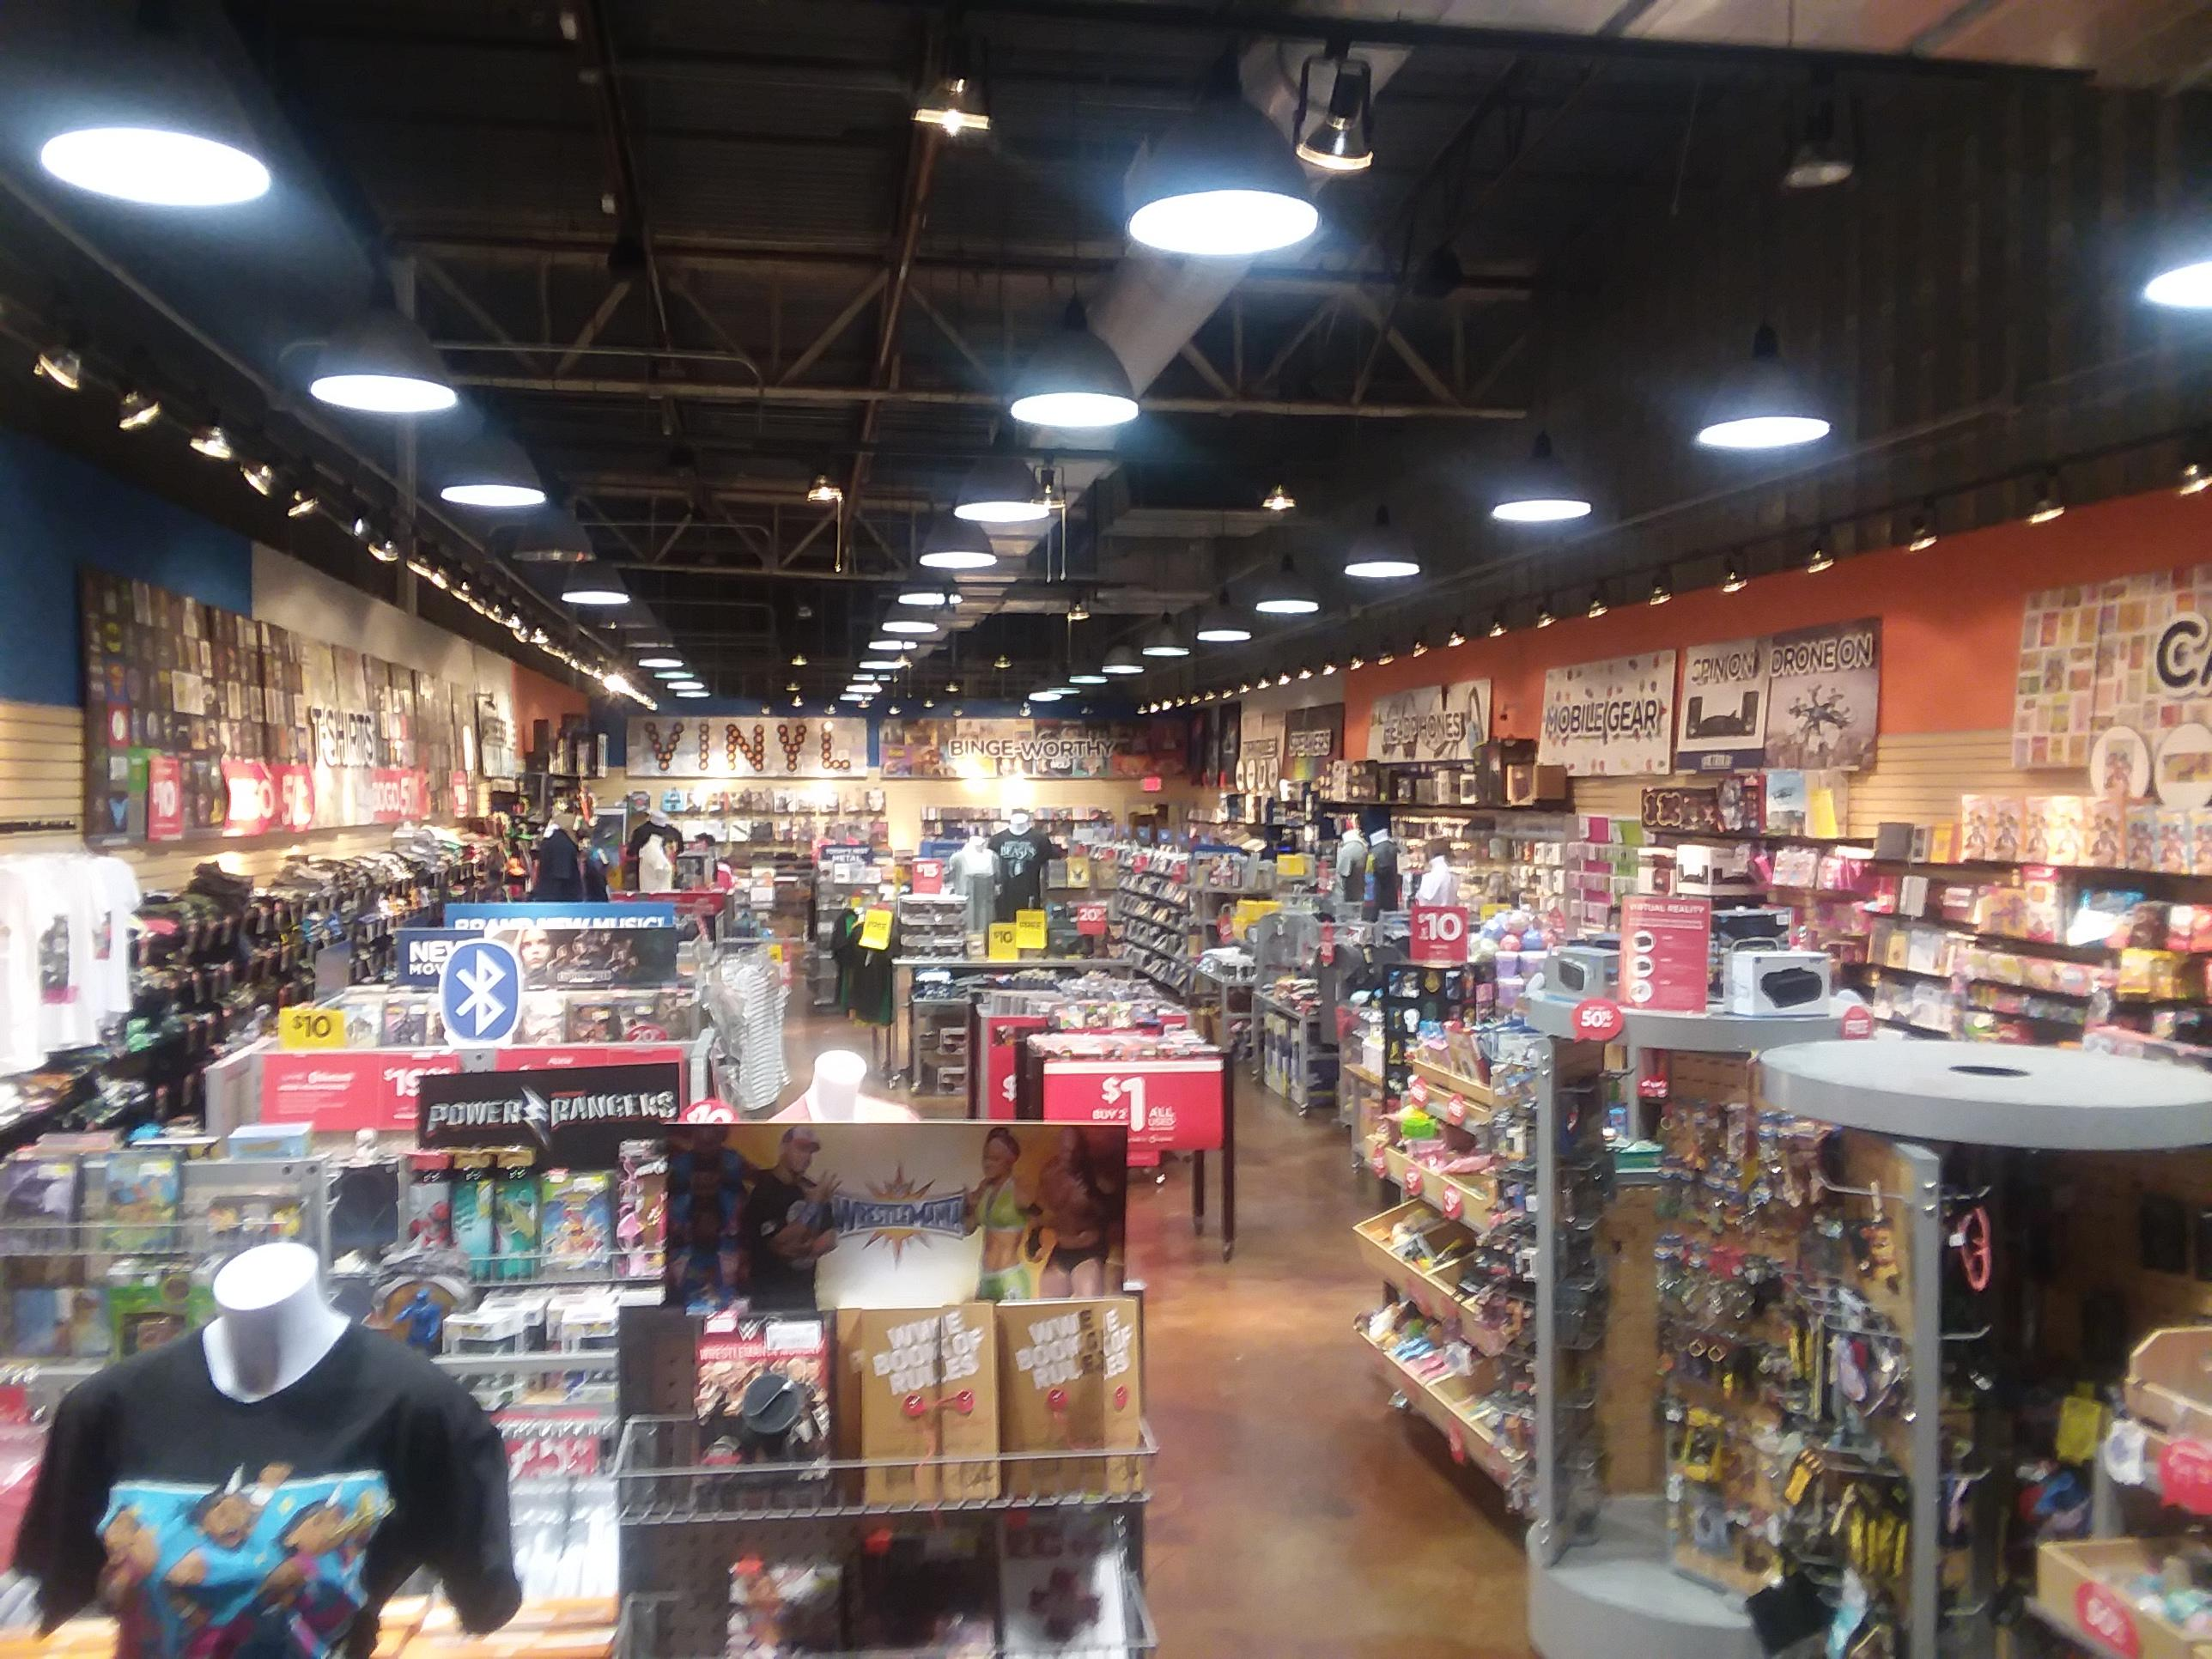 View info on The Disney Store Outlet store located at Arizona Mills in Tempe, AZ – including address, map, store hours, phone number, and more.